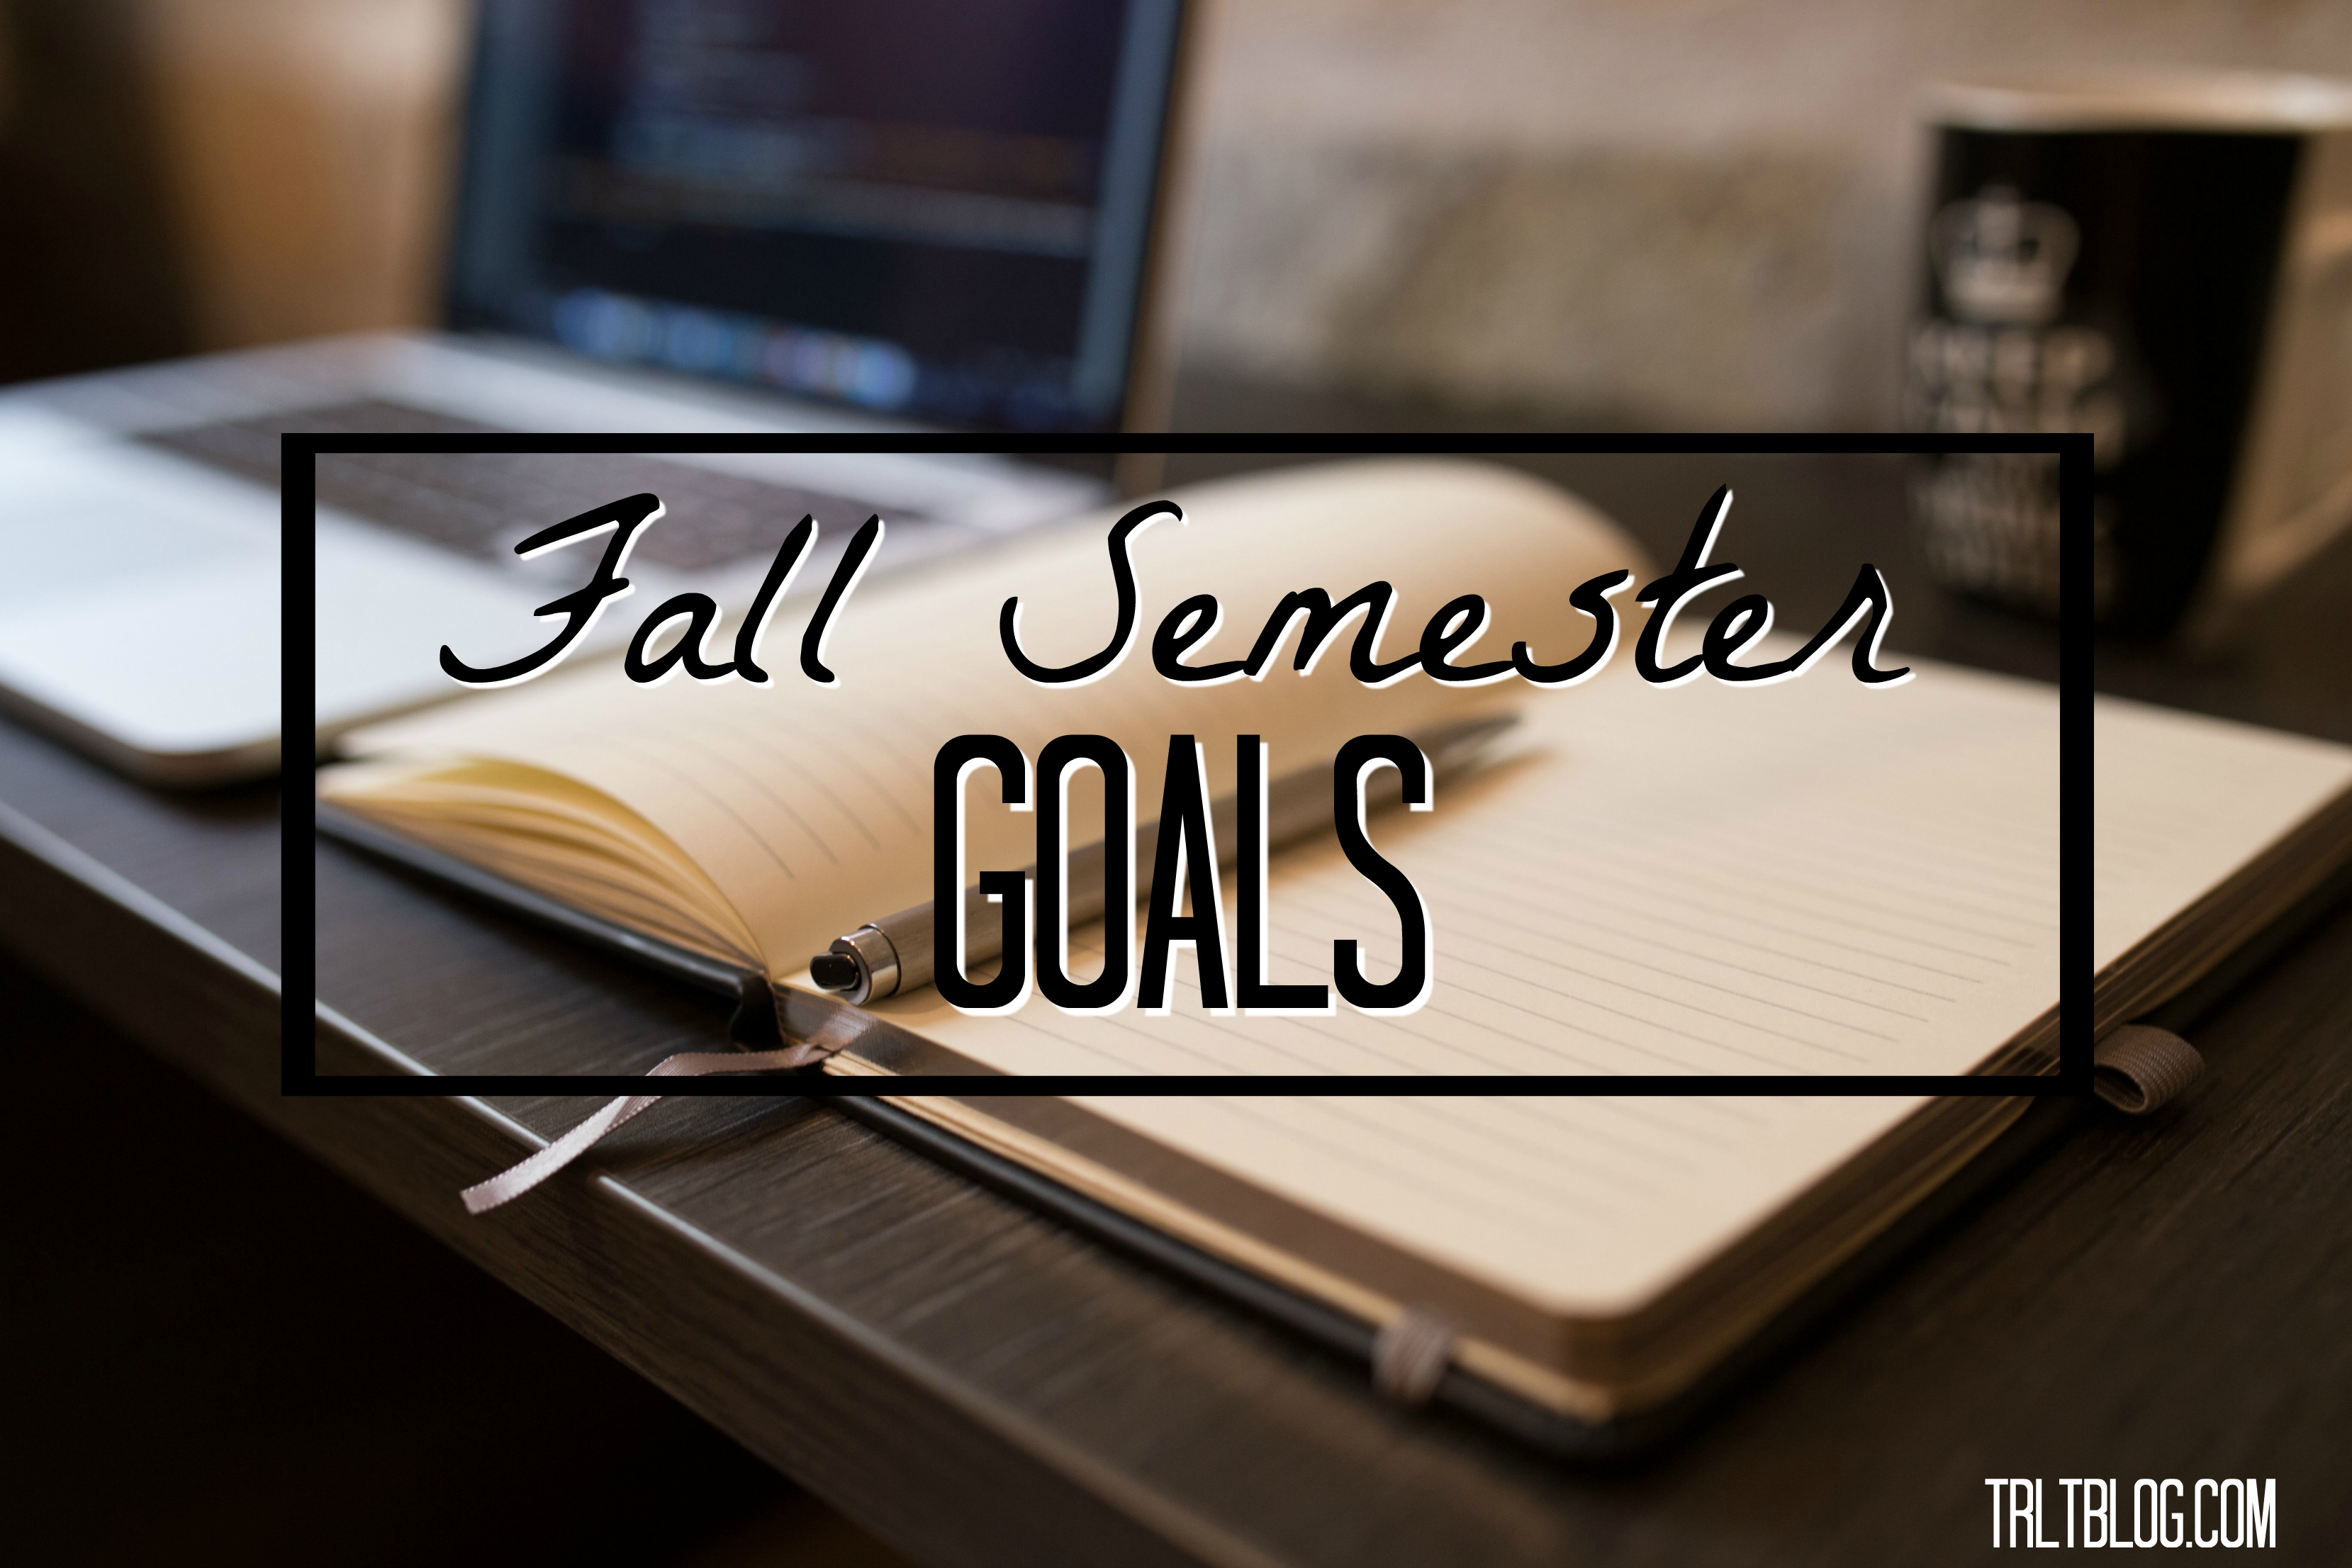 fall semester goals